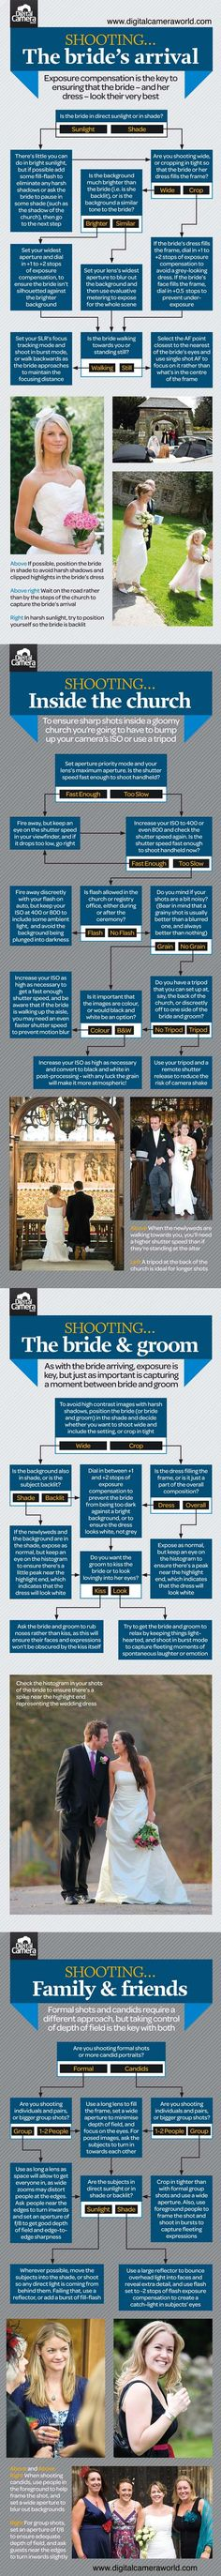 photo tips, wedding photography church, photographi cheat, wedding photography tips, wedding photos, the bride, photographing a wedding, digital cameras, photography cheat sheets